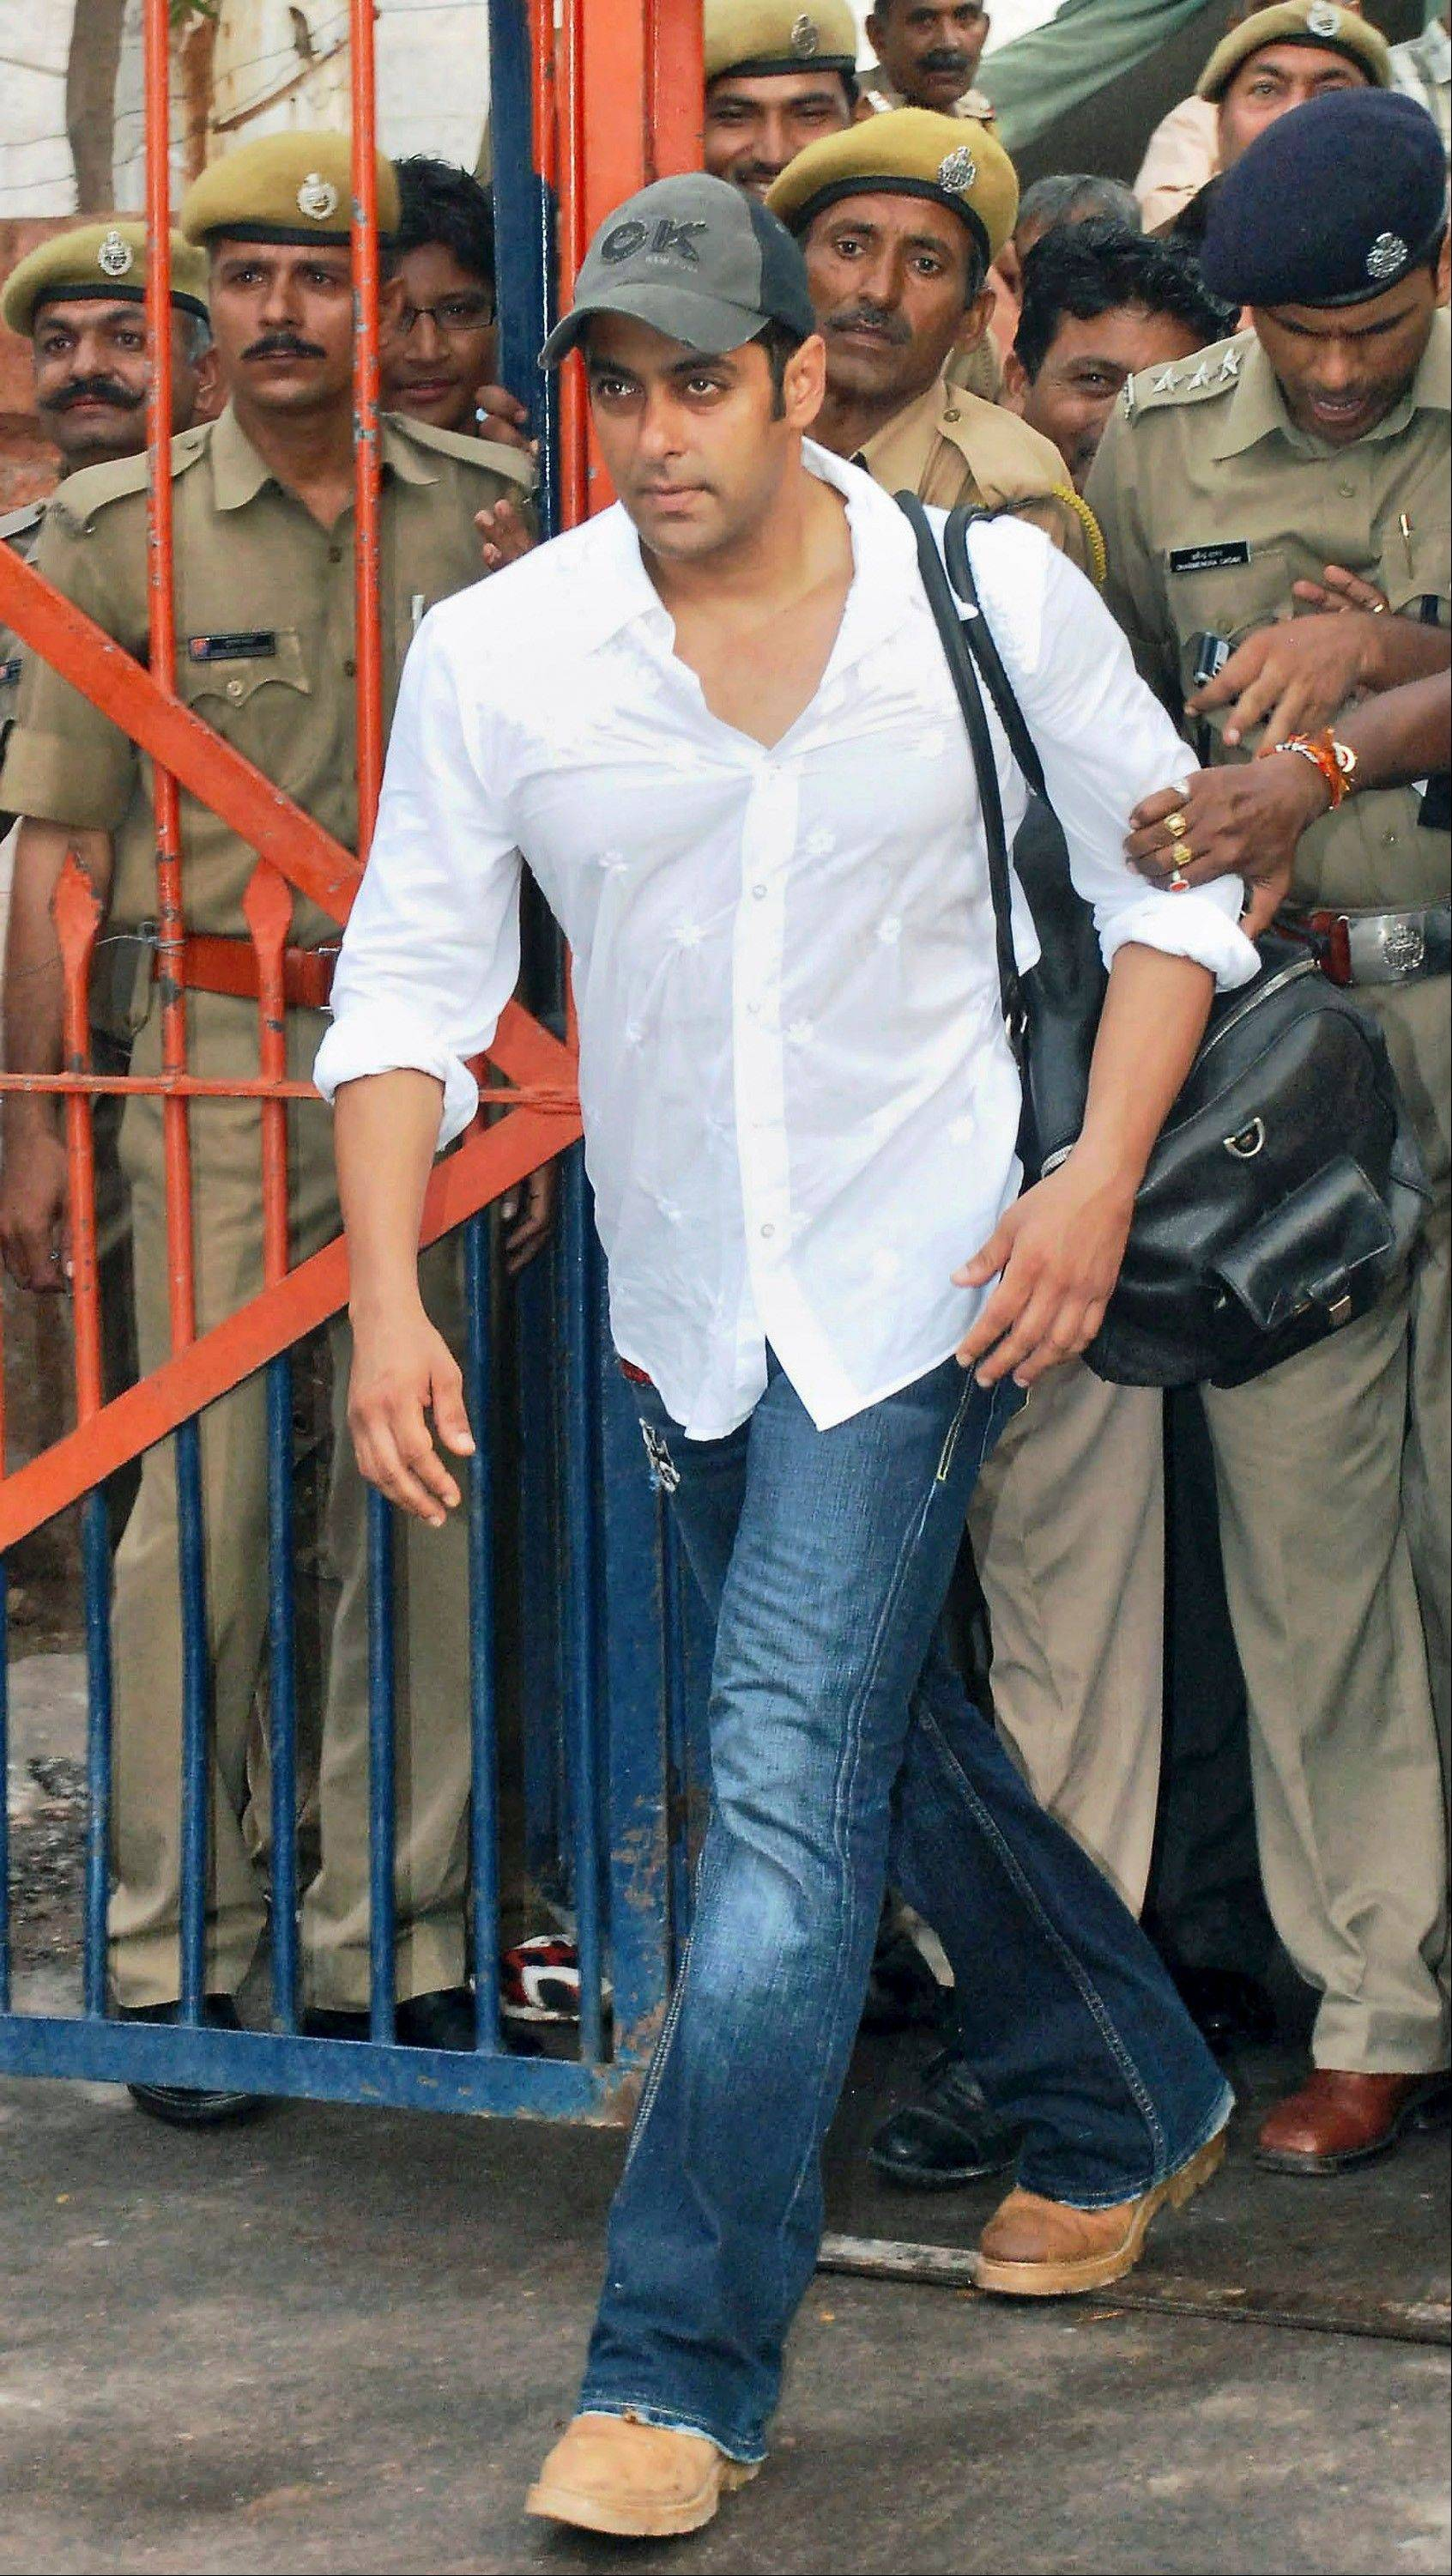 A Mumbai court has ruled Wednesday that Indian movie star Salman Khan will face trial on charges of homicide for his alleged involvement in a fatal road accident more than 10 years ago.